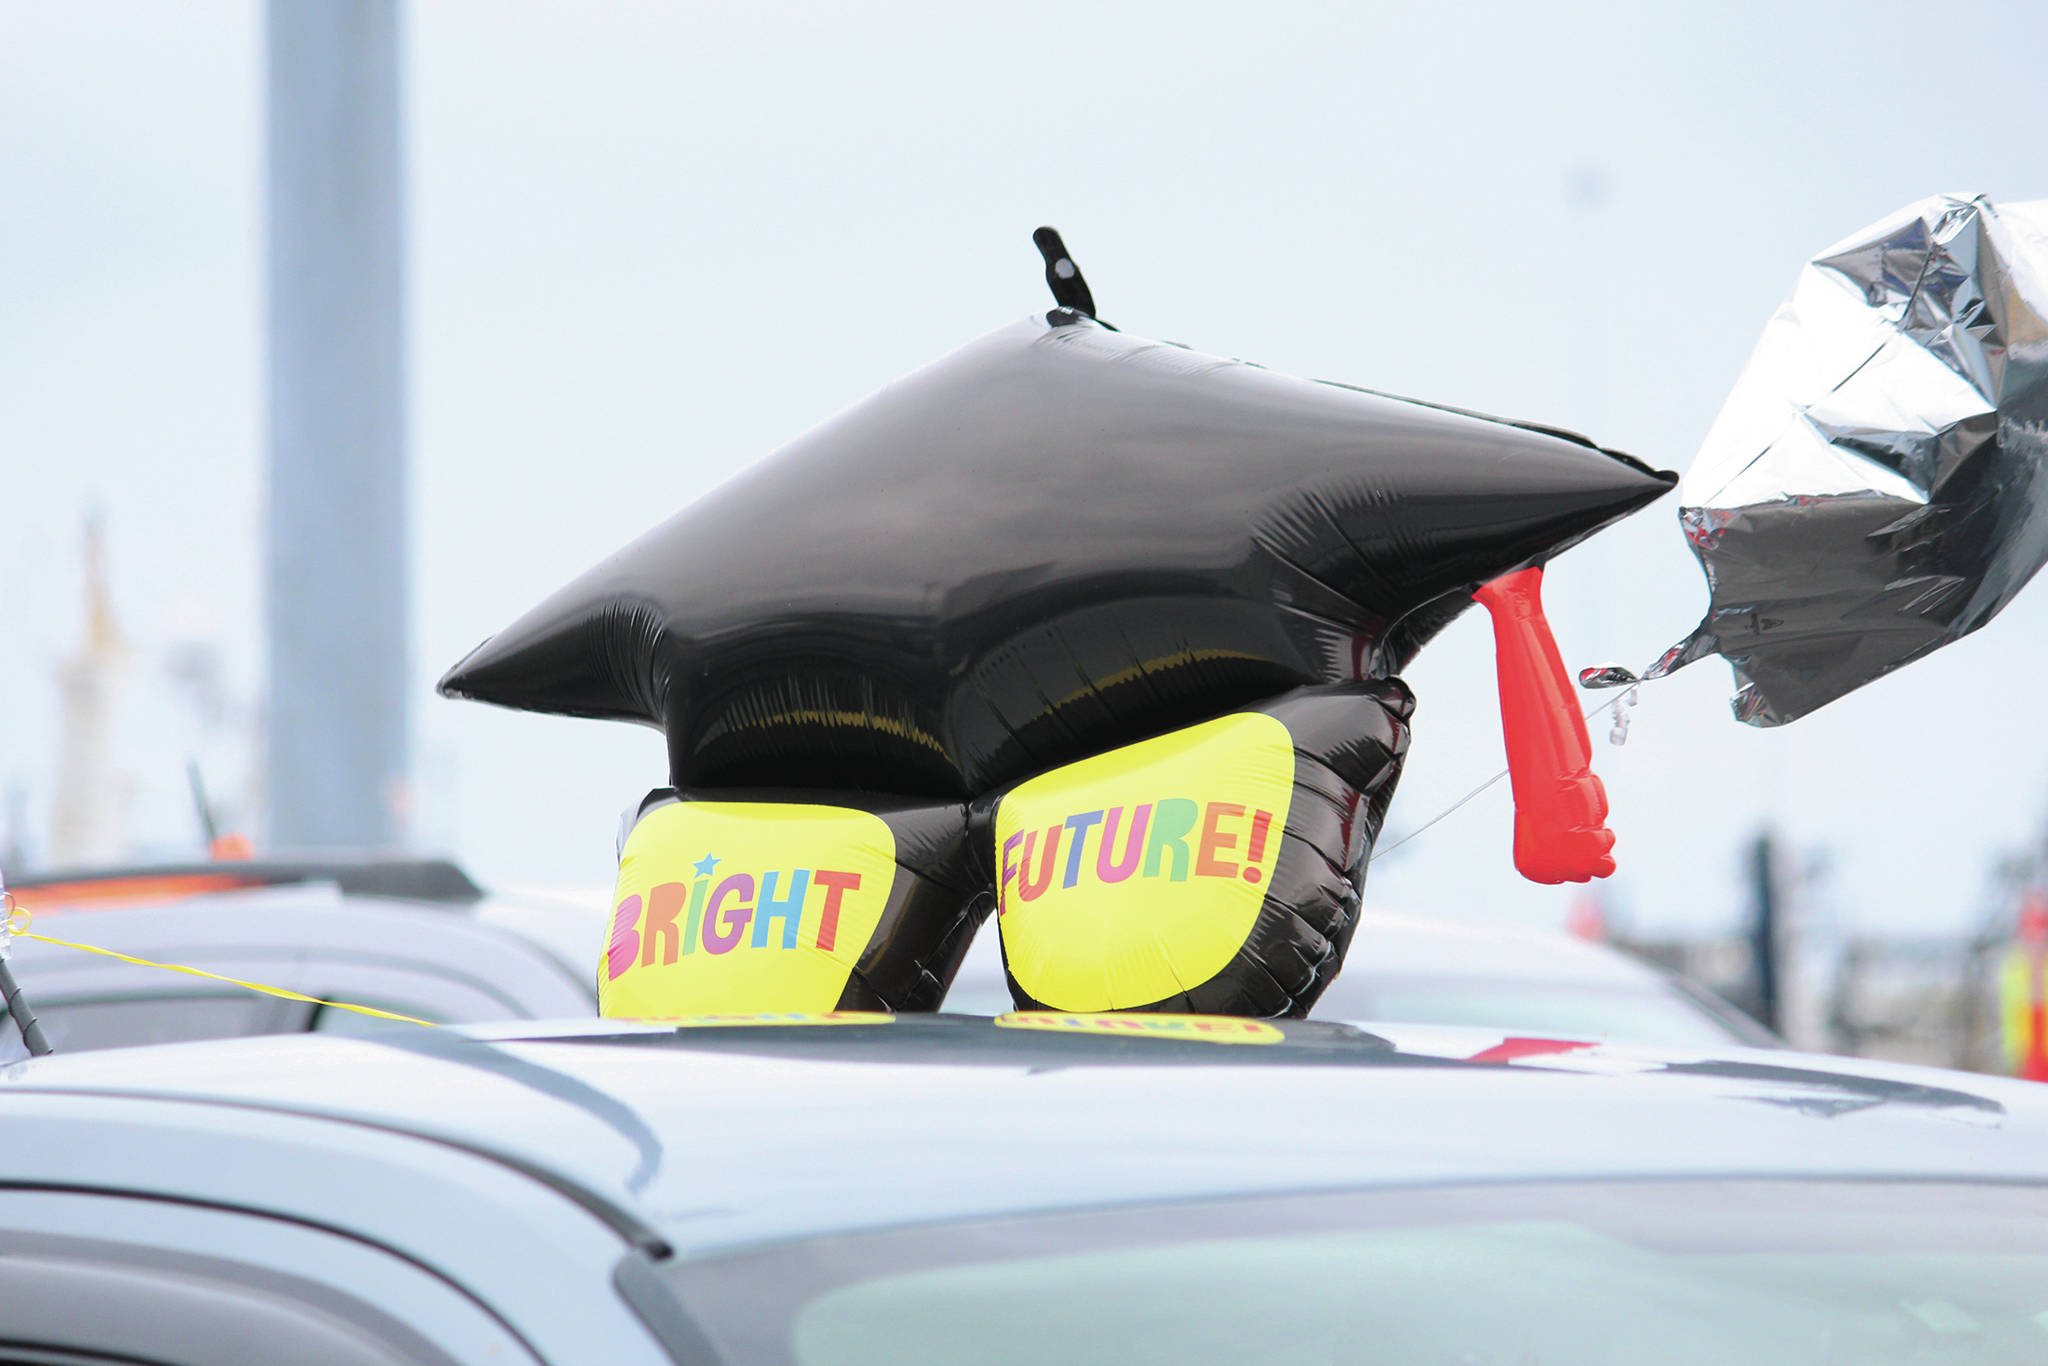 A graduation balloon sits atop a vehicle during an alternative graduation ceremony for Homer Flex School on Monday, May 18, 2020 at the Homer Harbor in Homer, Alaska. (Photo by Megan Pacer/Homer News)